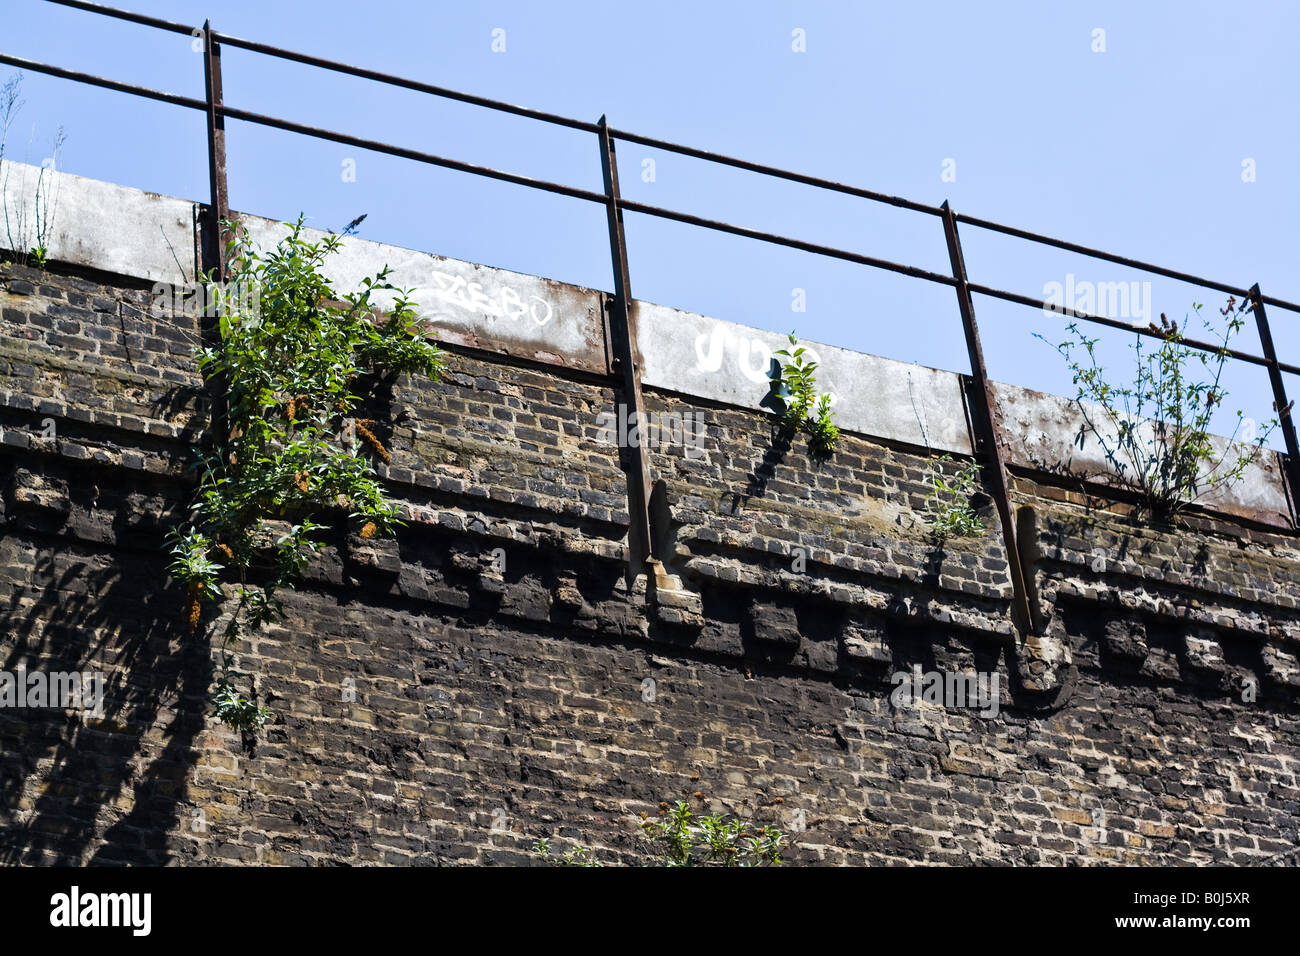 Looking up at old brick railway bridge with railings, some plants growing out of wall and faint graffiti. - Stock Image